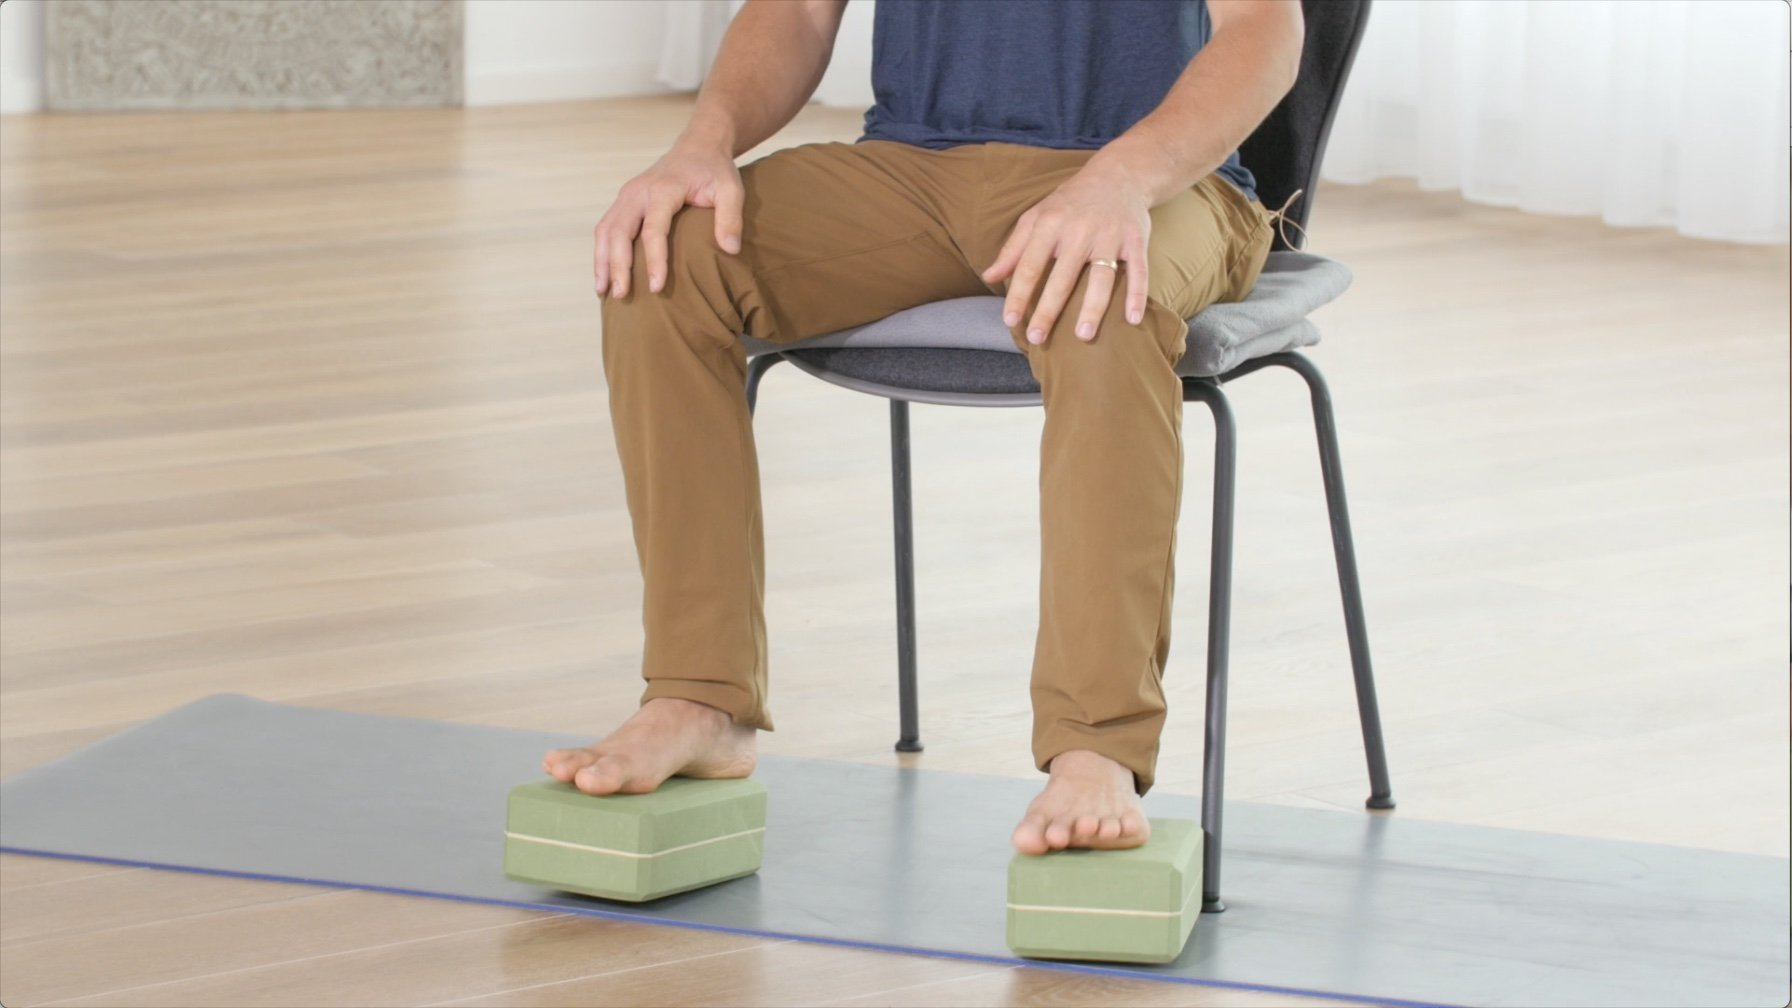 seated meditation posture on chair with props